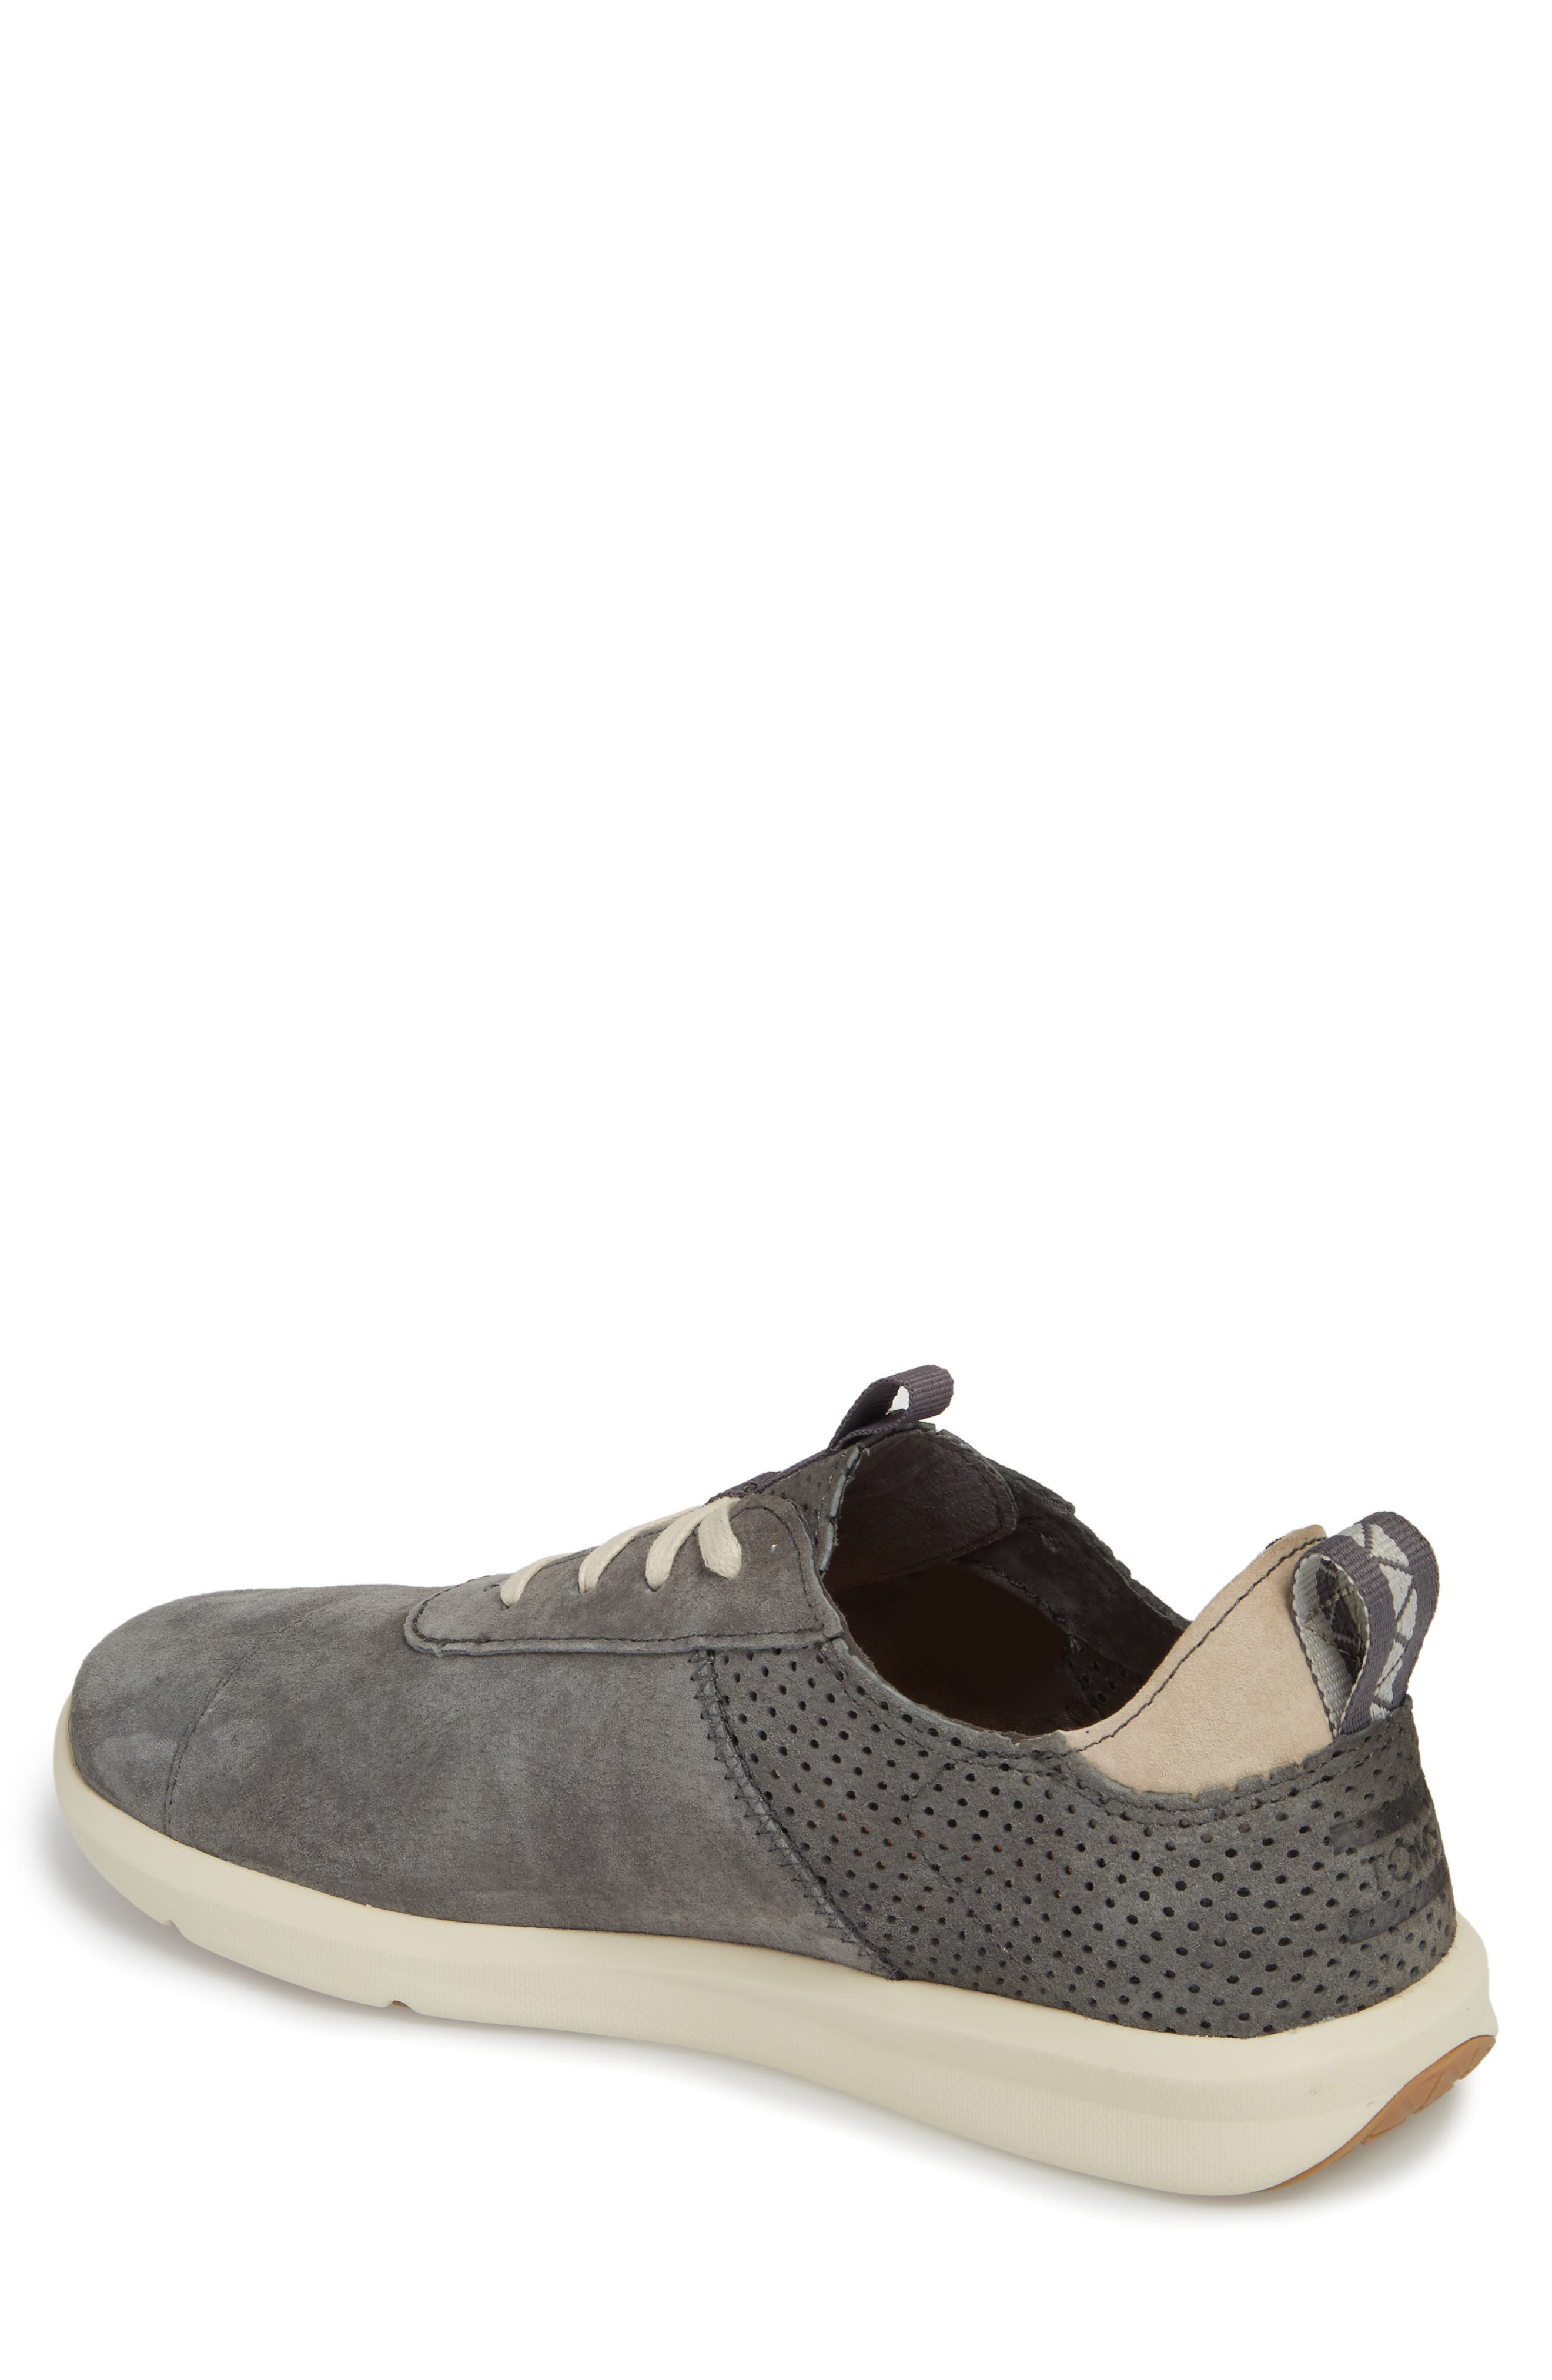 Cabrillo Perforated Low Top Sneaker,                             Alternate thumbnail 2, color,                             021